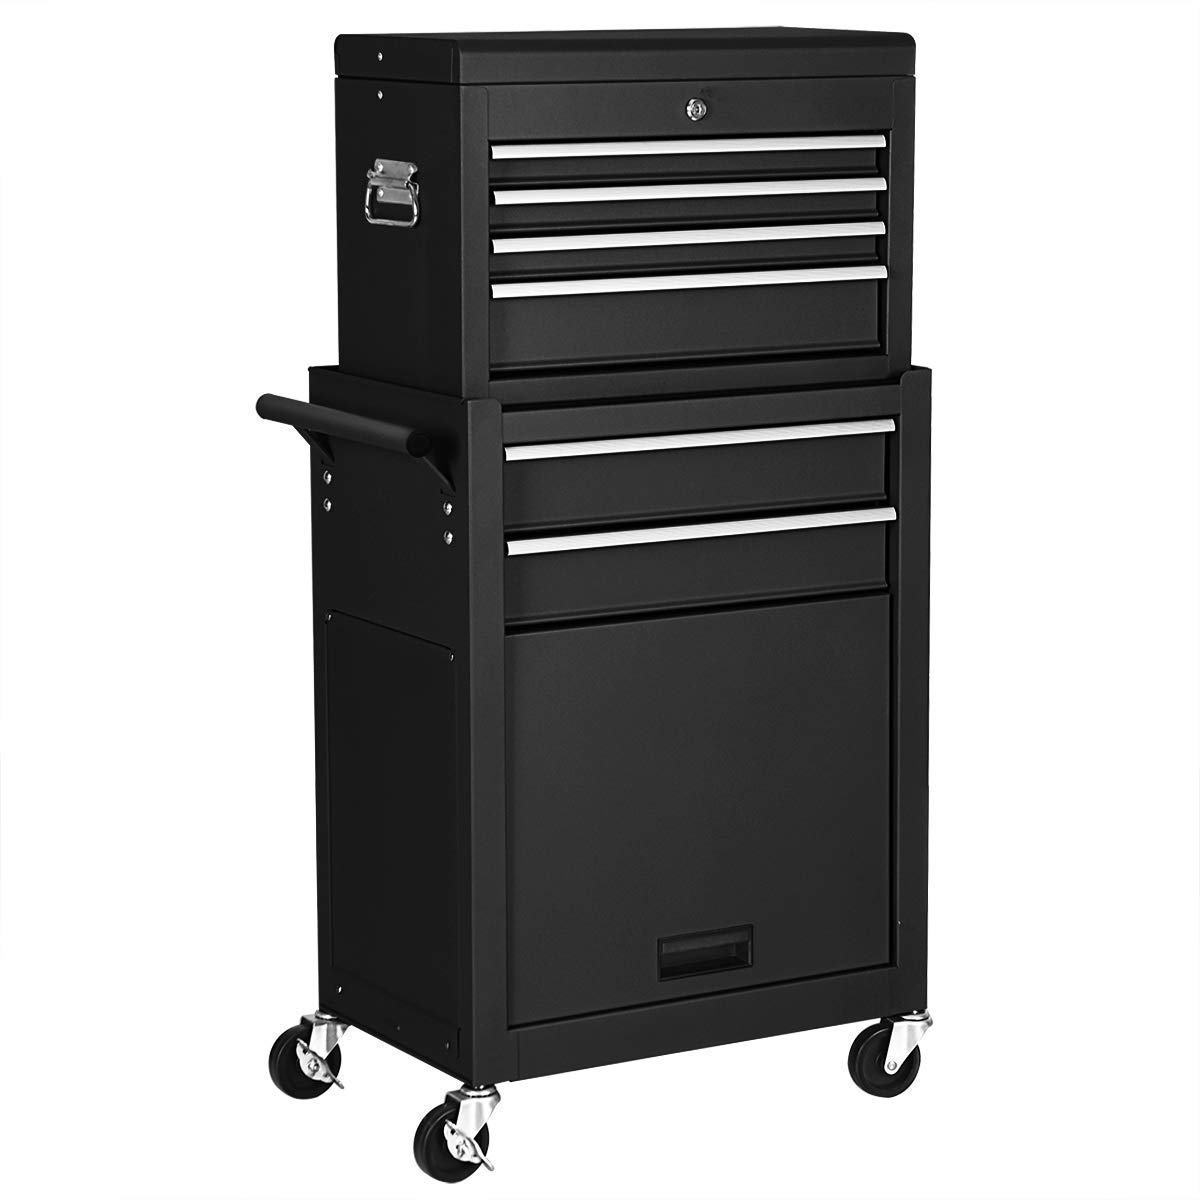 Goplus 6-Drawer Rolling Tool Chest Removable Tool Storage Cabinet with Sliding Drawers, Keyed Locking System Toolbox Organizer (Black) by Goplus (Image #7)